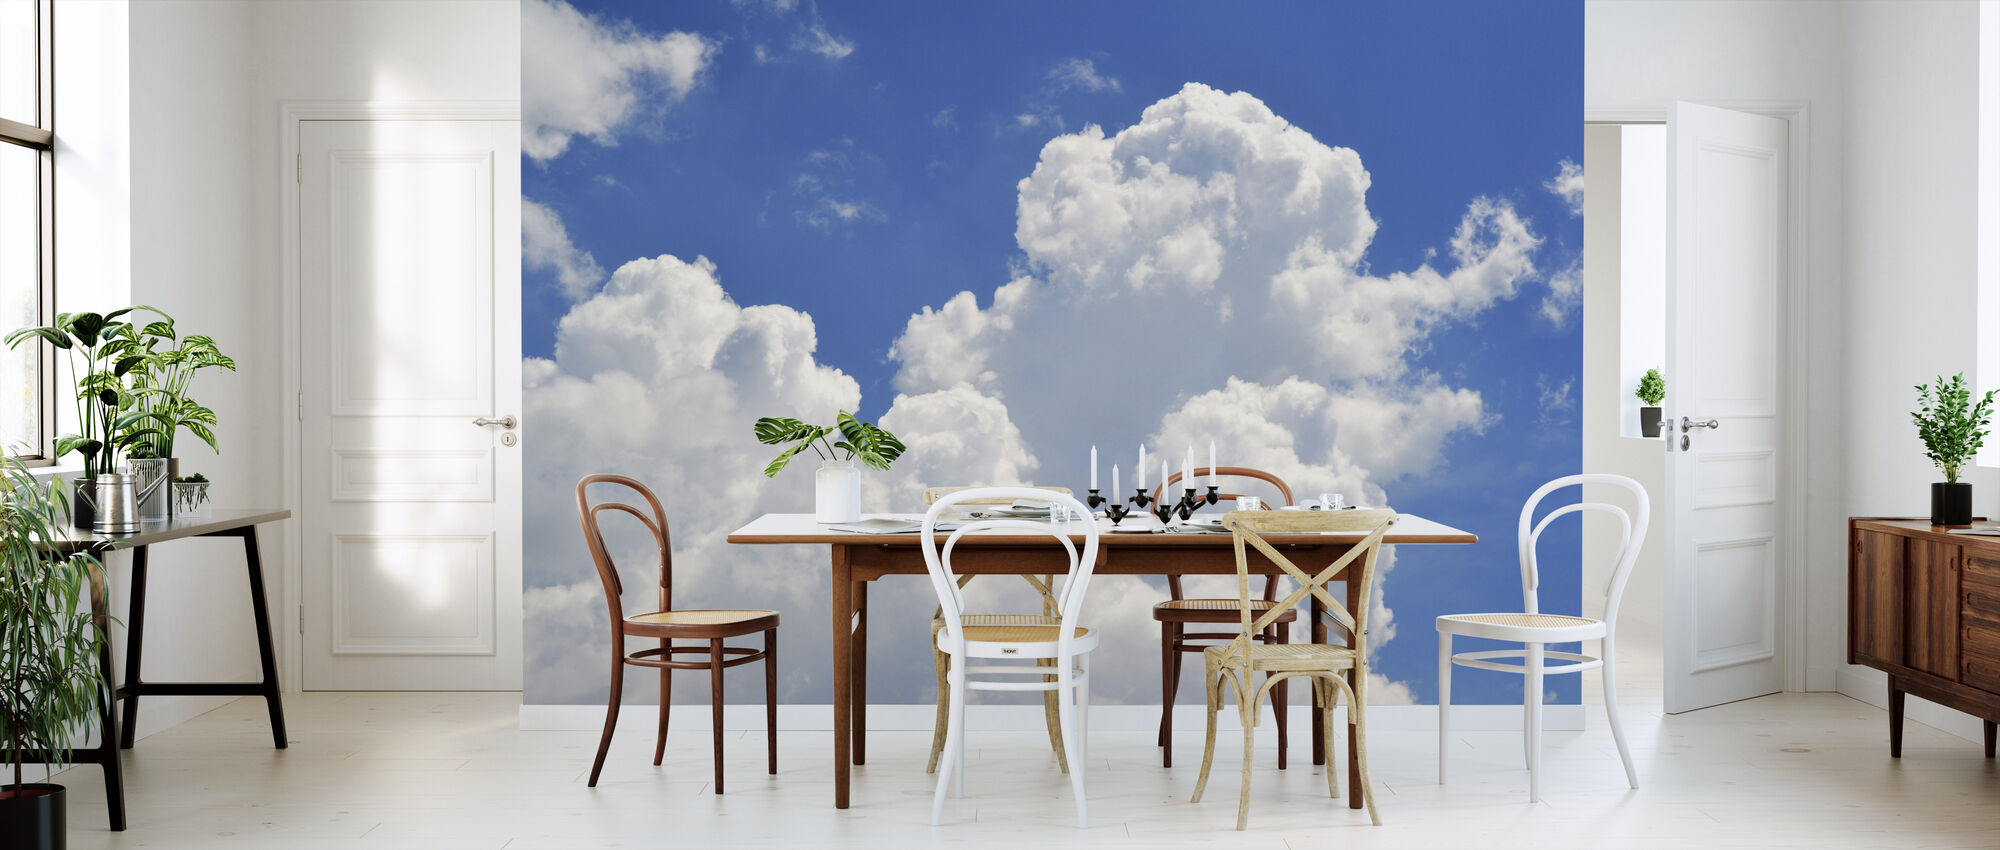 Clouds in the Sky - Wallpaper - Kitchen